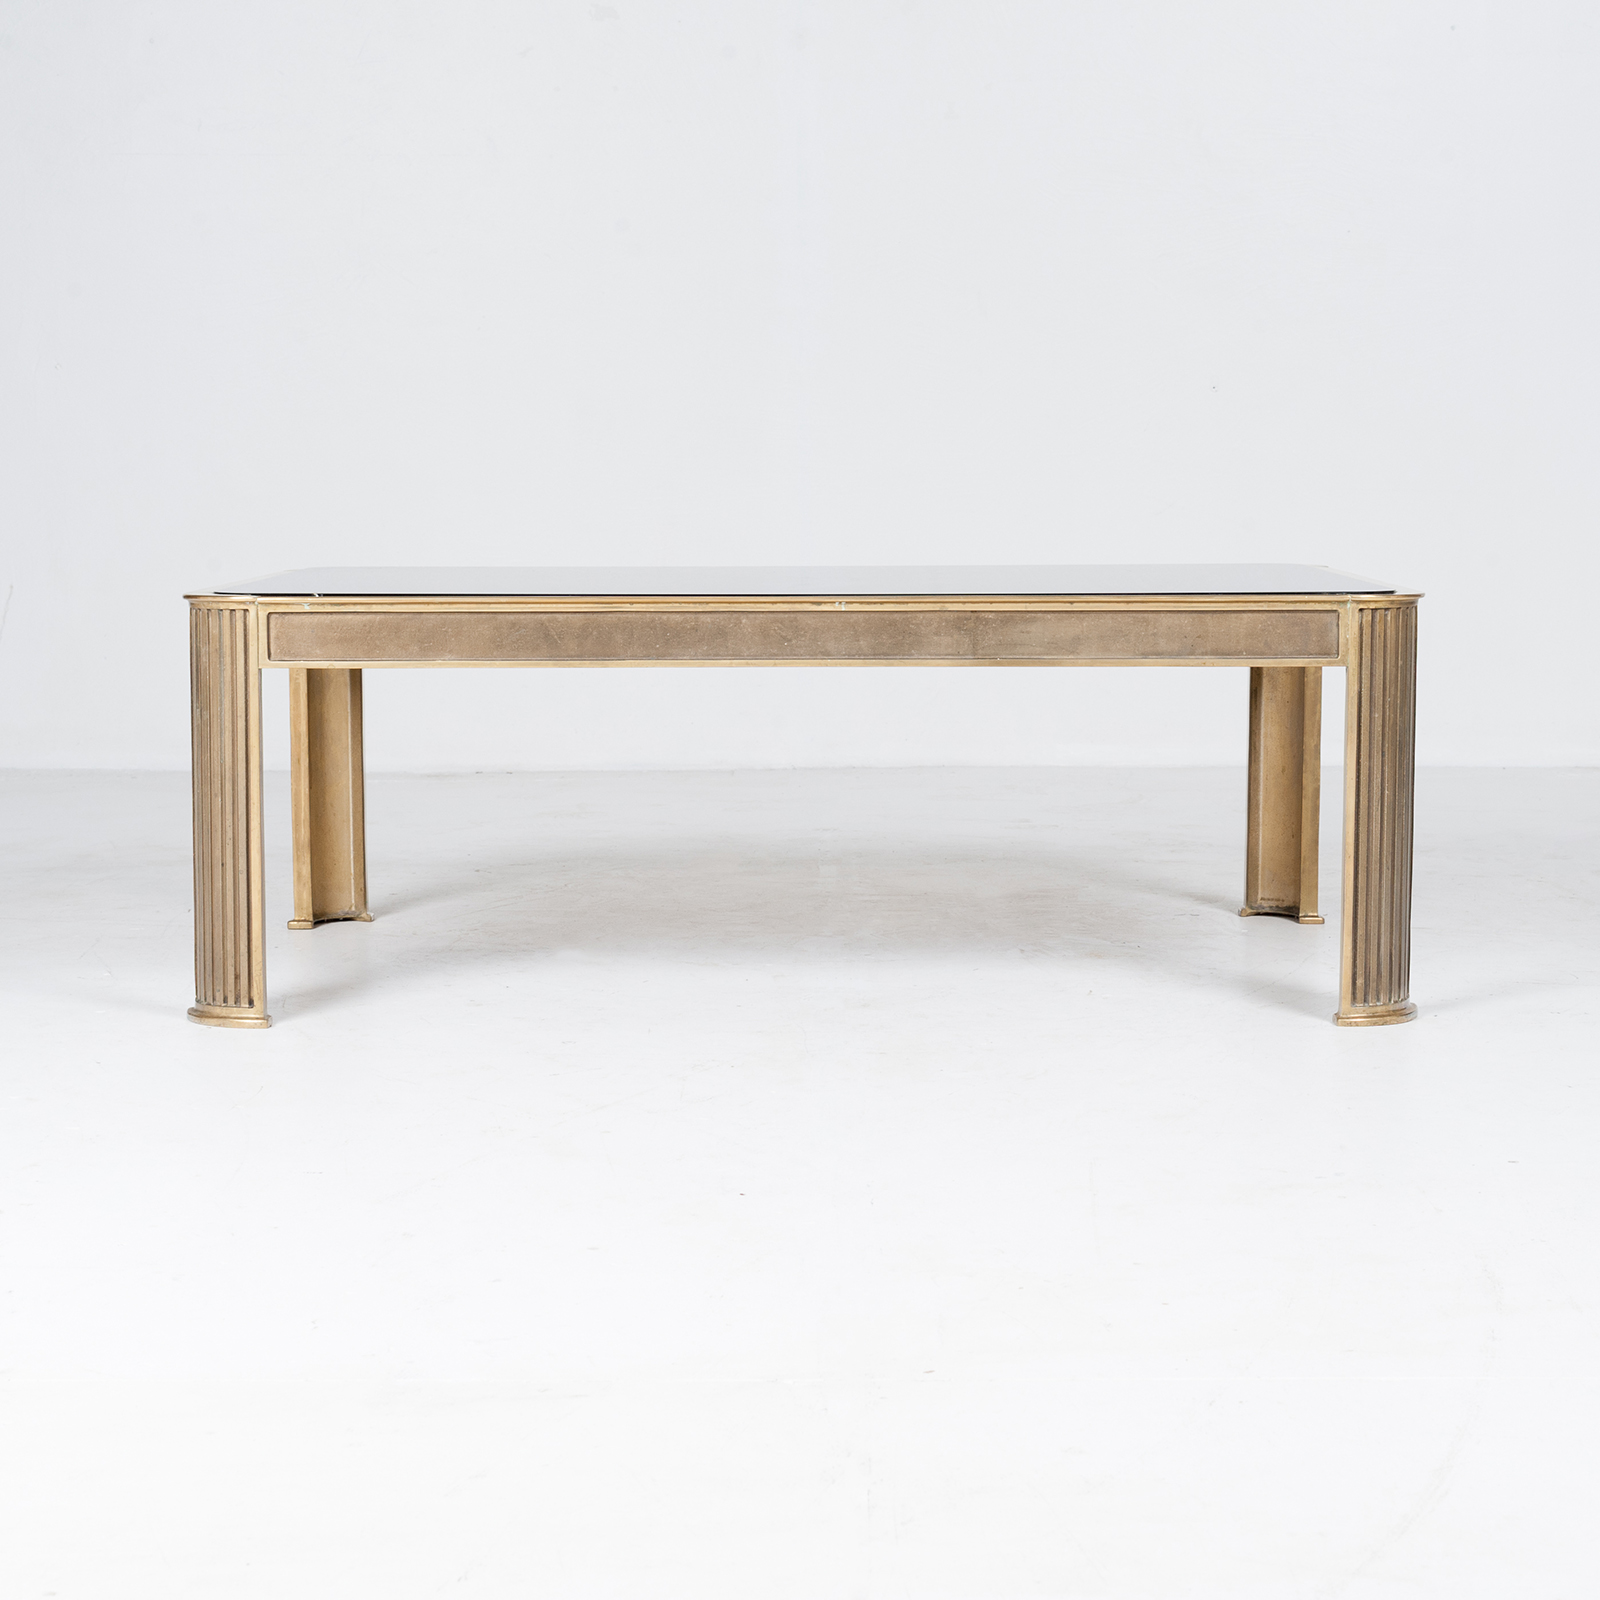 Rectangular Coffee Table With Solid Brass Frame By Peter Ghyczy, 1970s, The Netherlands 3